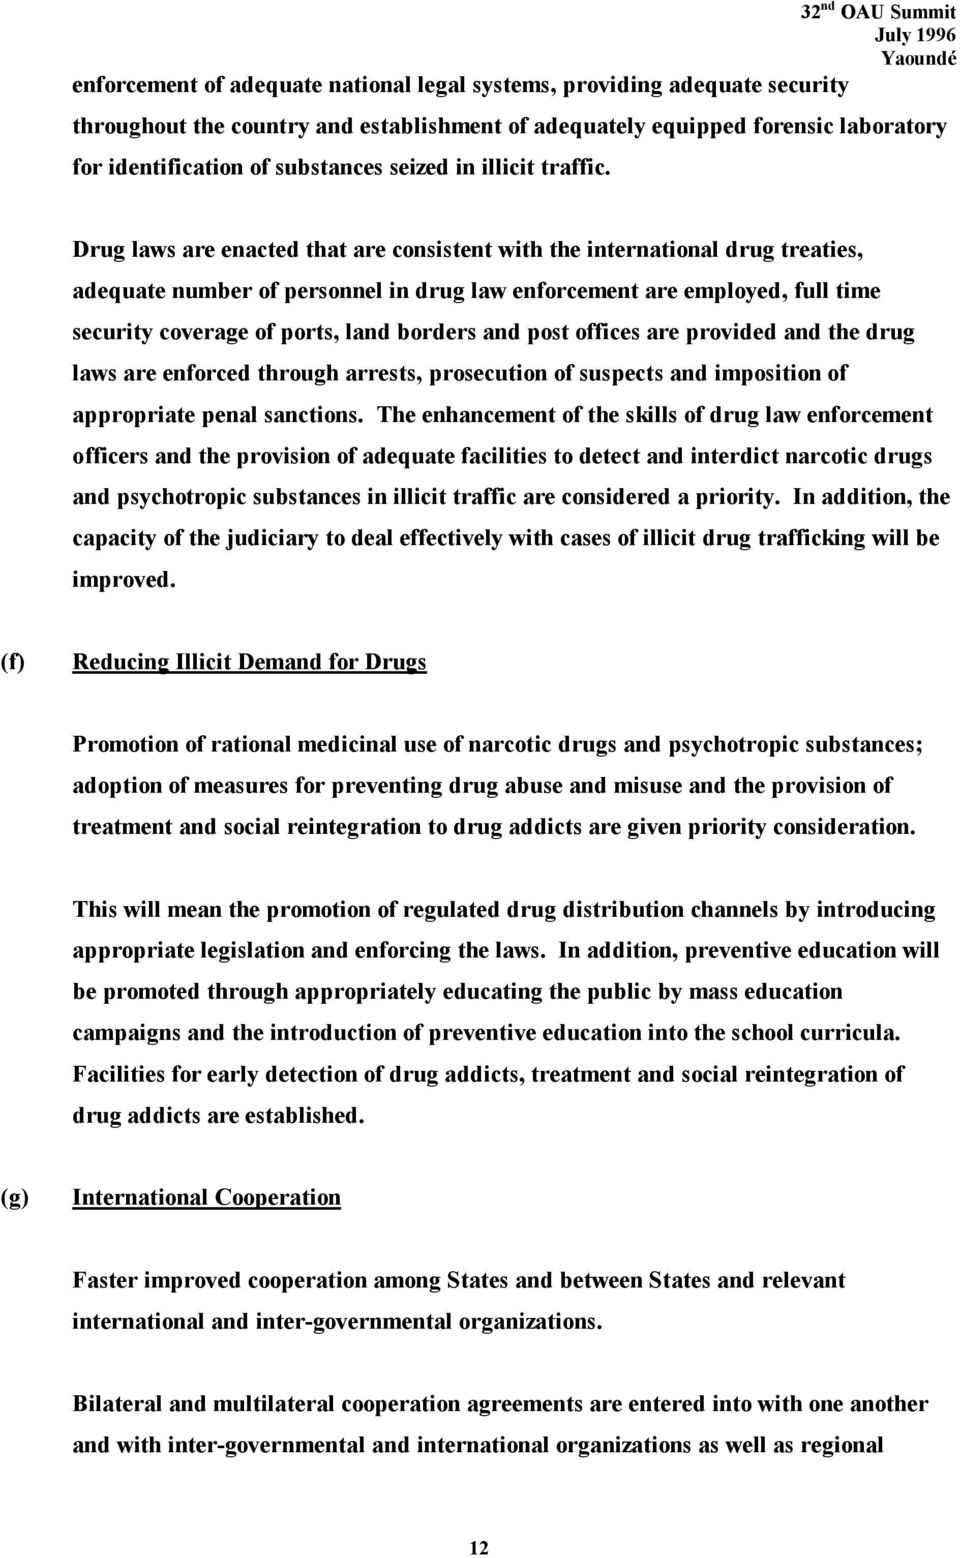 Drug laws are enacted that are consistent with the international drug treaties, adequate number of personnel in drug law enforcement are employed, full time security coverage of ports, land borders